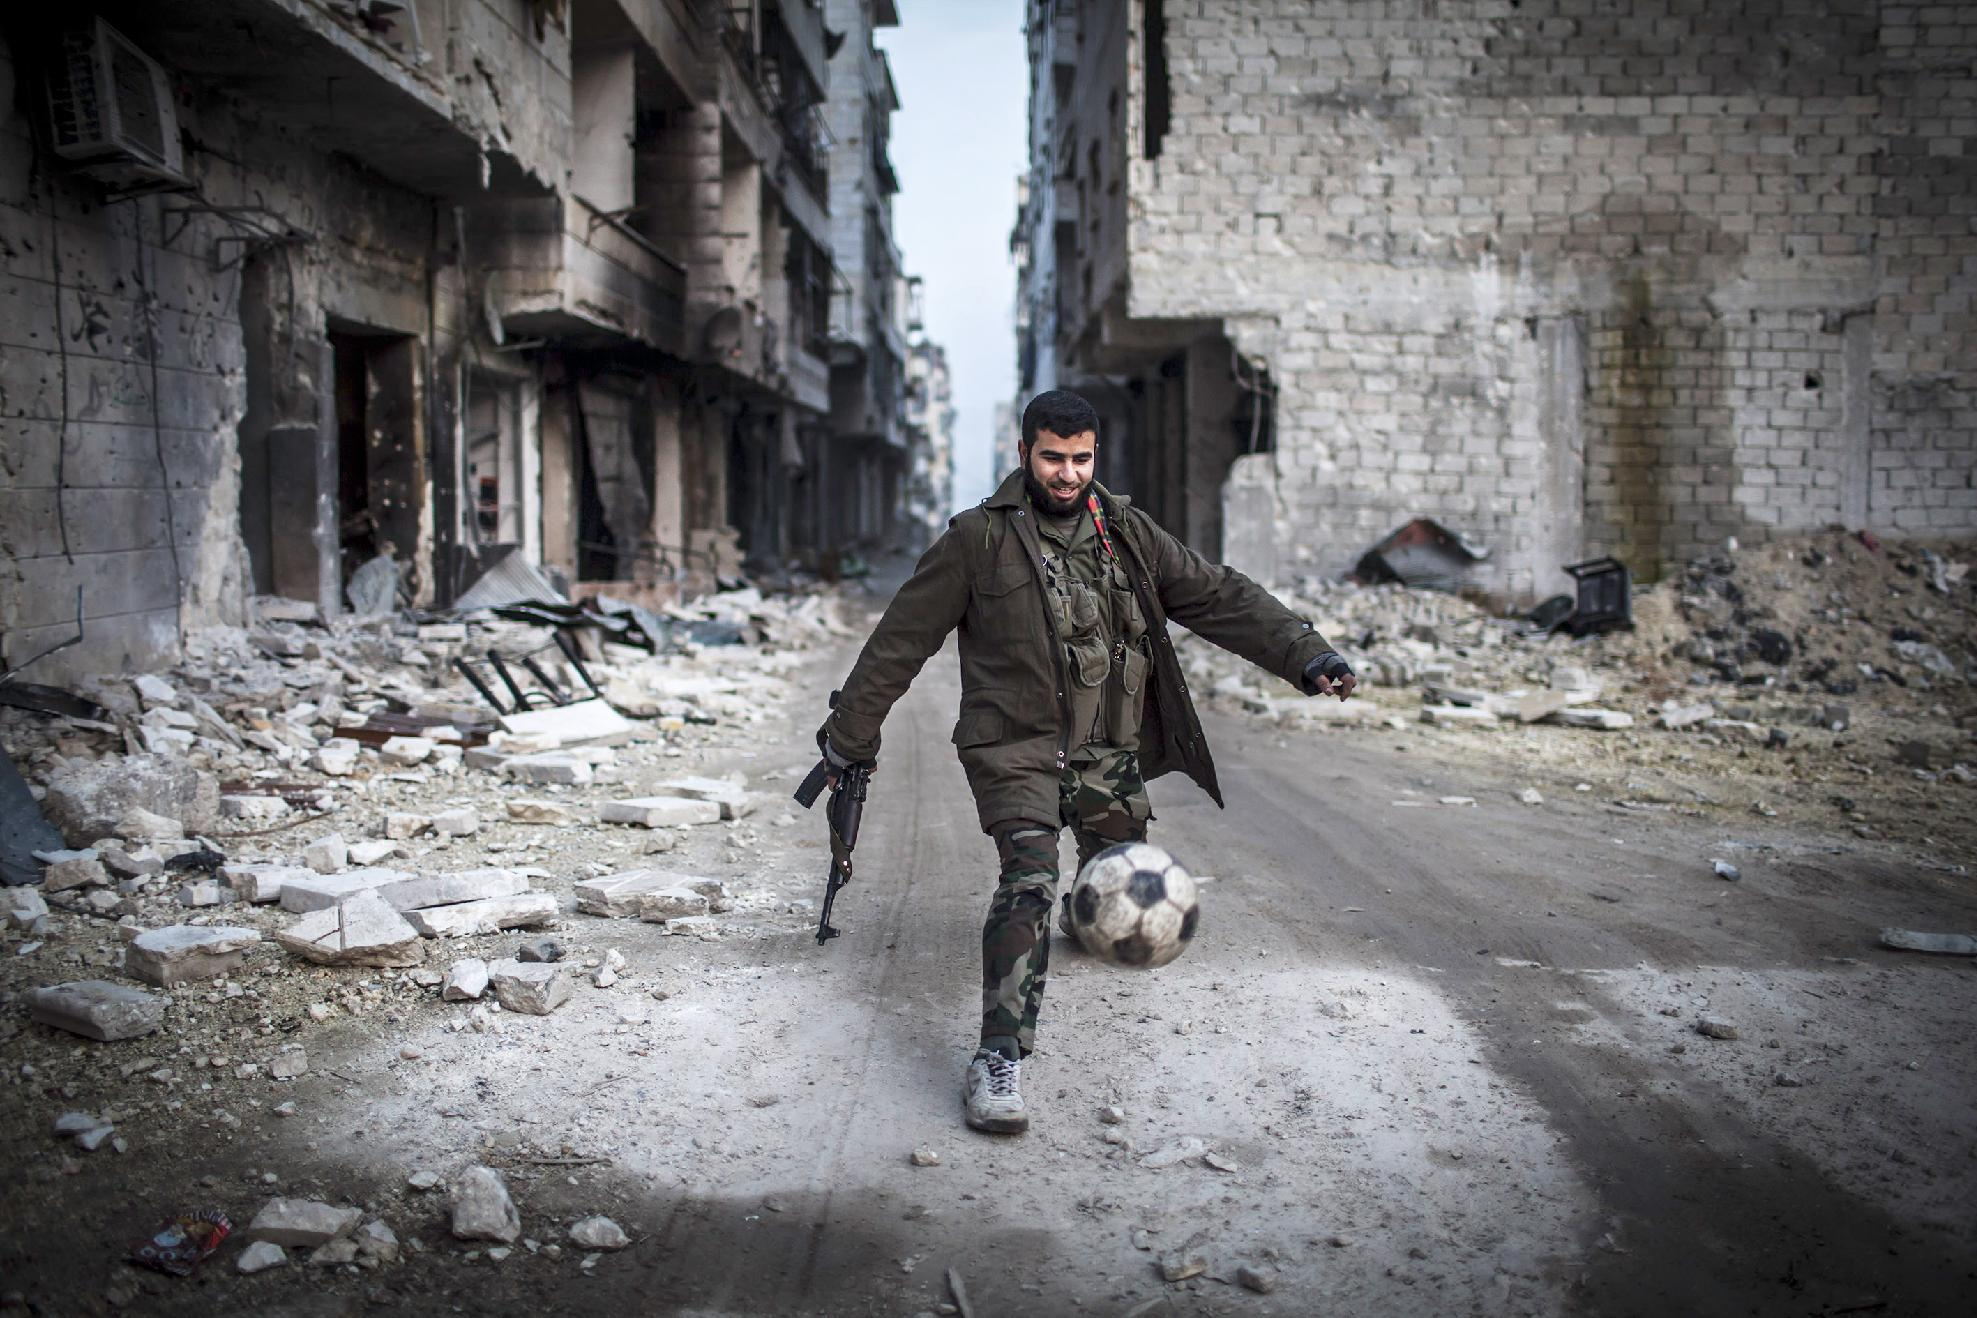 FILE - In this January 2, 2013, file photo, a Syrian rebel plays soccer in the Saif al-Dawlah neighborhood of Aleppo, Syria. For Syria's banned Muslim Brotherhood, the uprising against President Bashar Assad that erupted amid Arab Spring revolts in 2011 provided a long-sought opportunity to stage a comeback after decades spent in exile. (AP Photo/Andoni Lubacki, File)